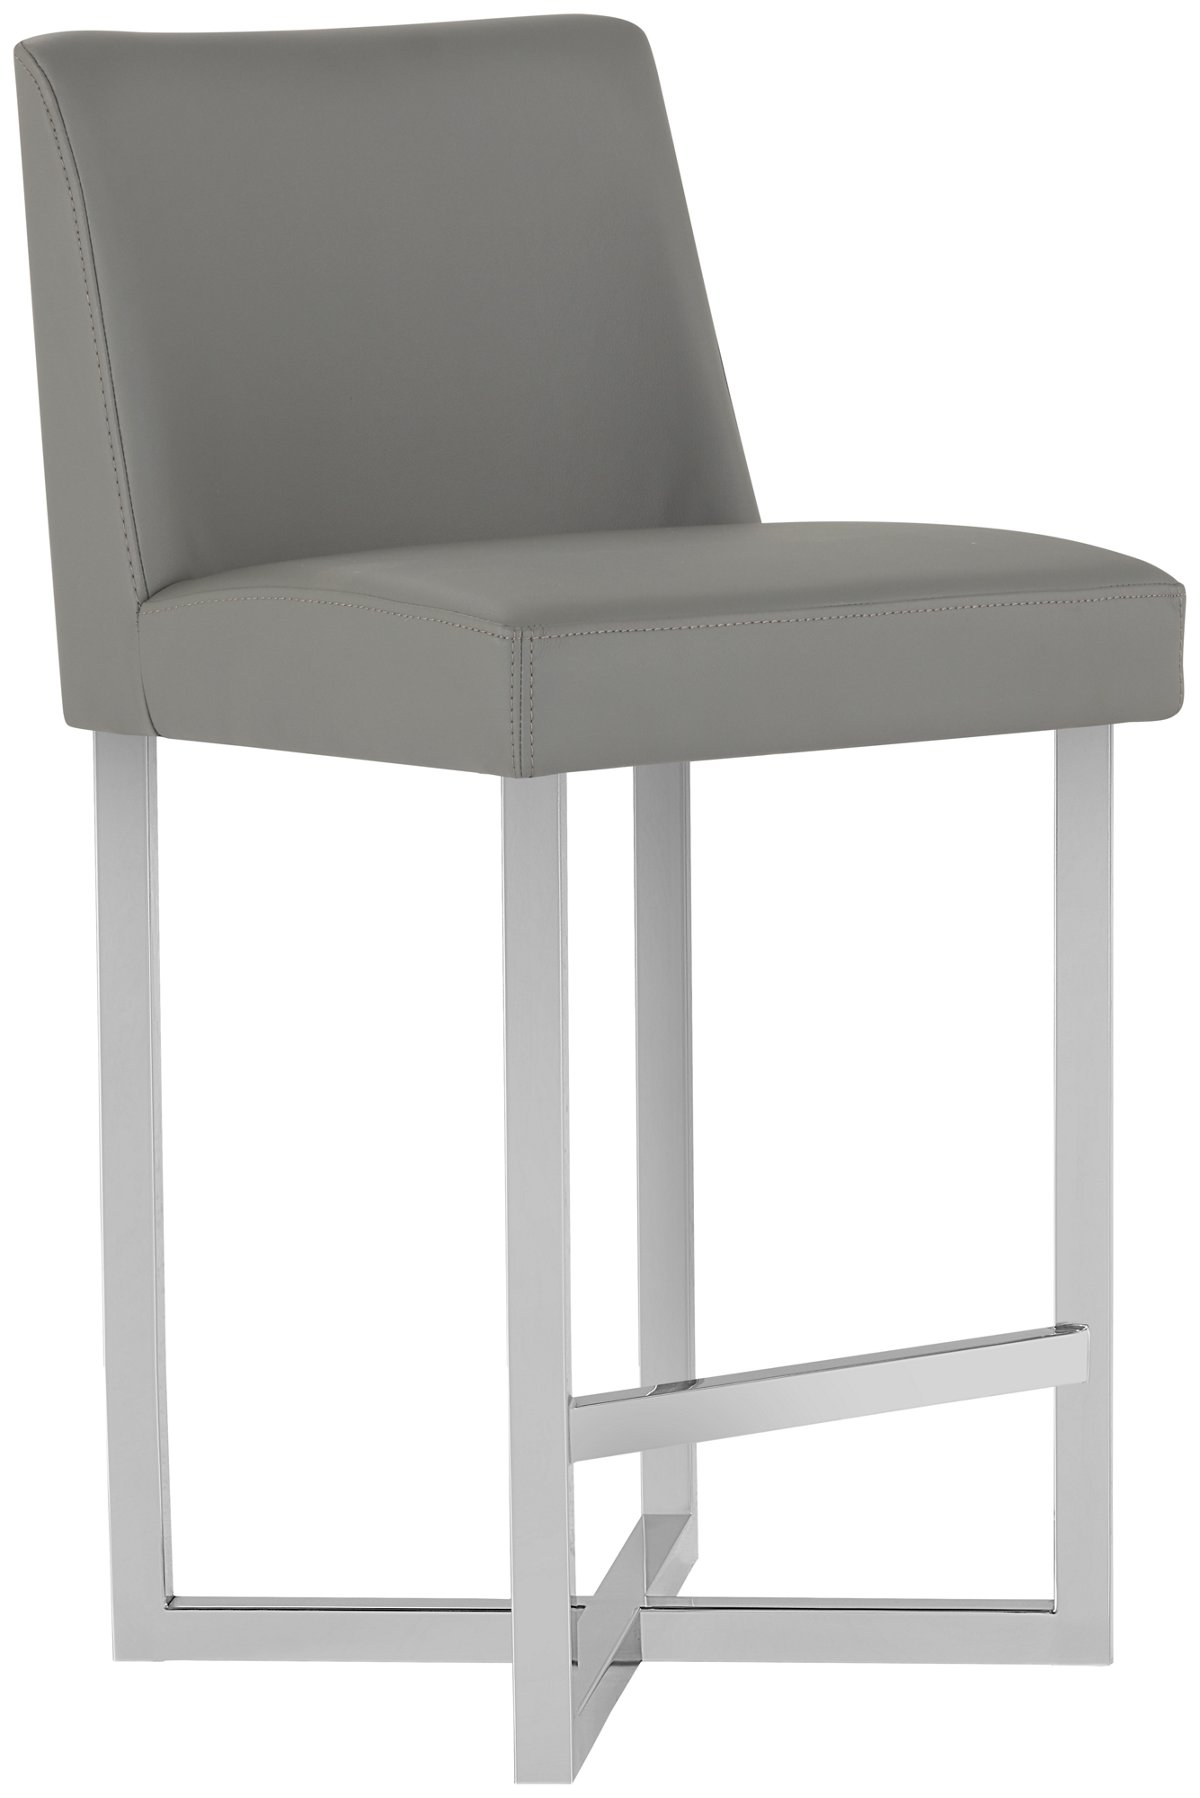 "Howard Gray Upholstered 24"" Upholstered Barstool"